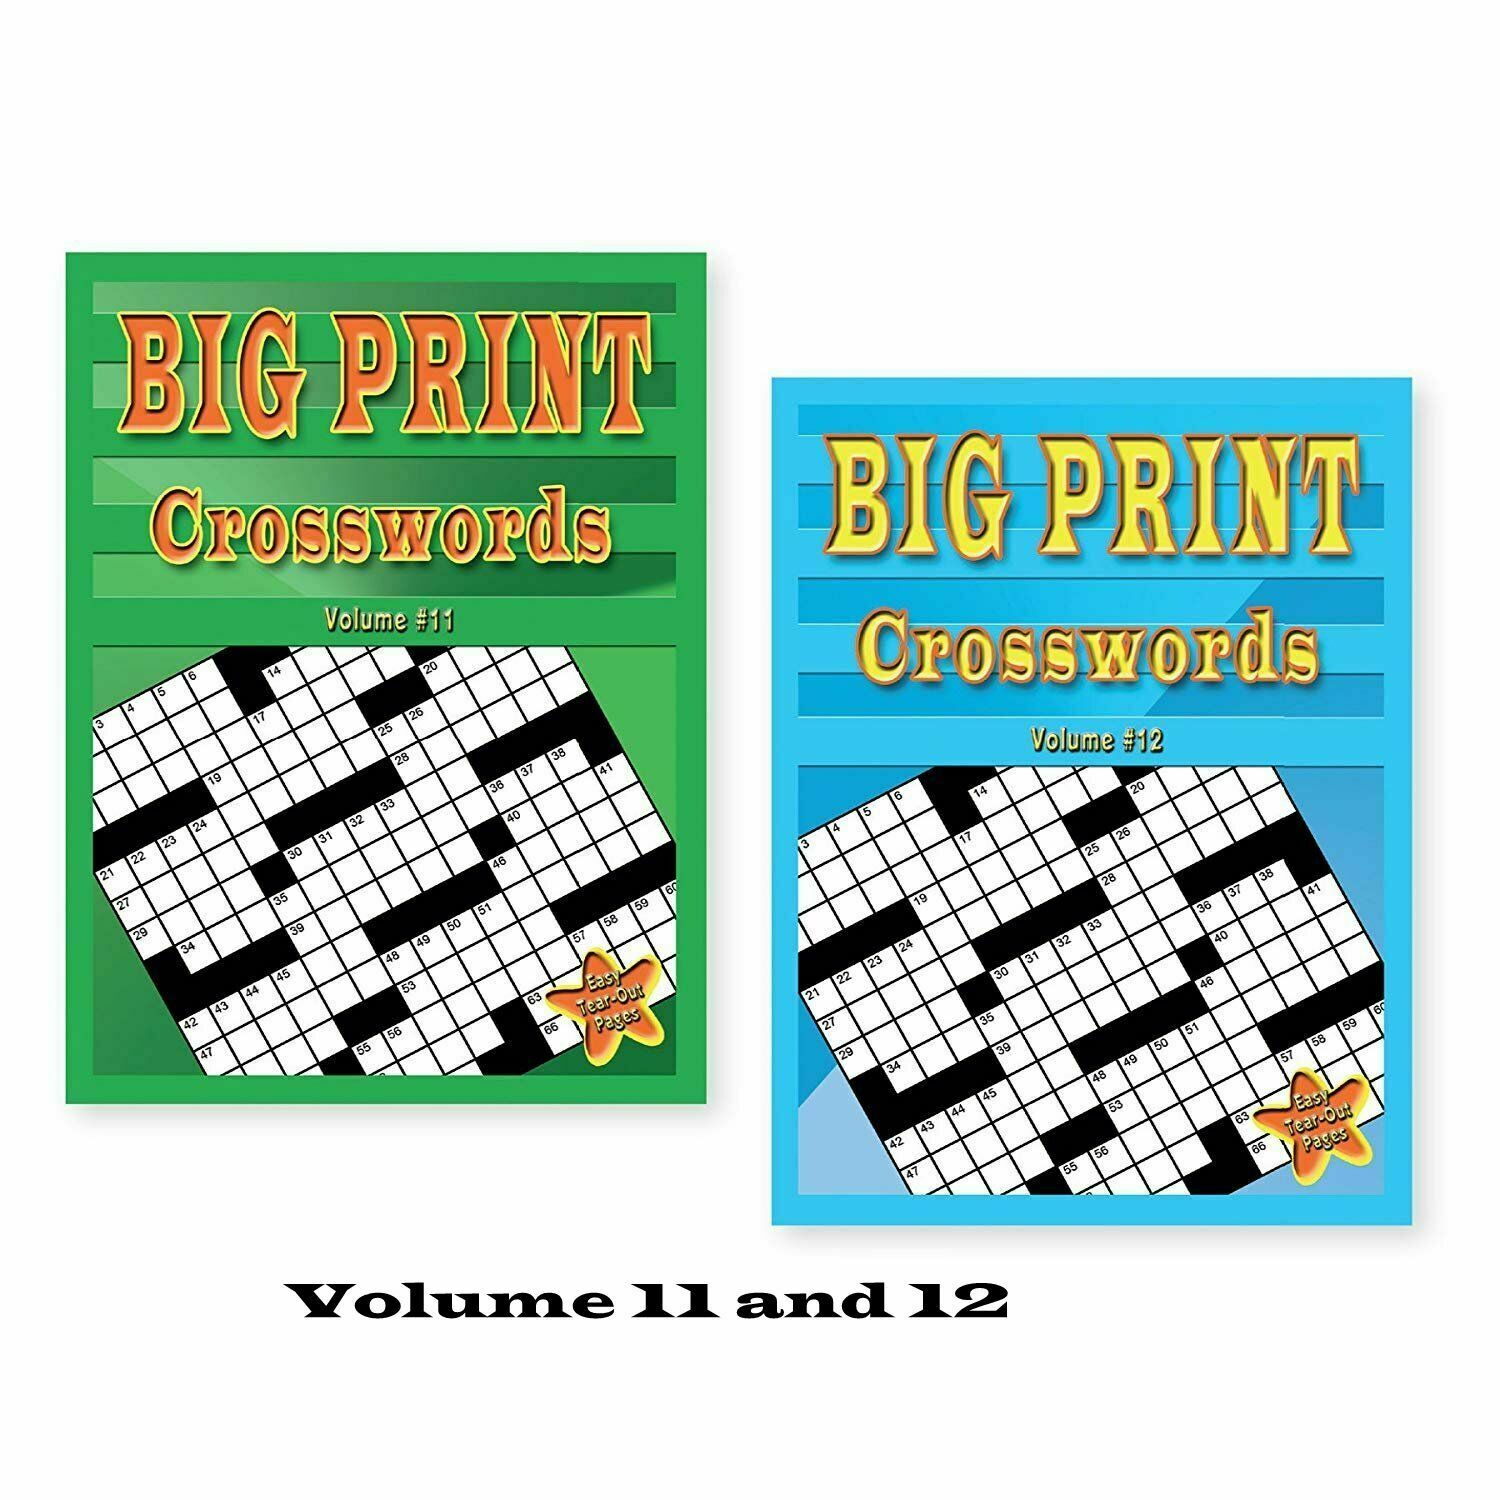 Set Of 2 Large Print Crossword Puzzle Books Soft Cover Easy To Read - Large Print Crossword Puzzle Books